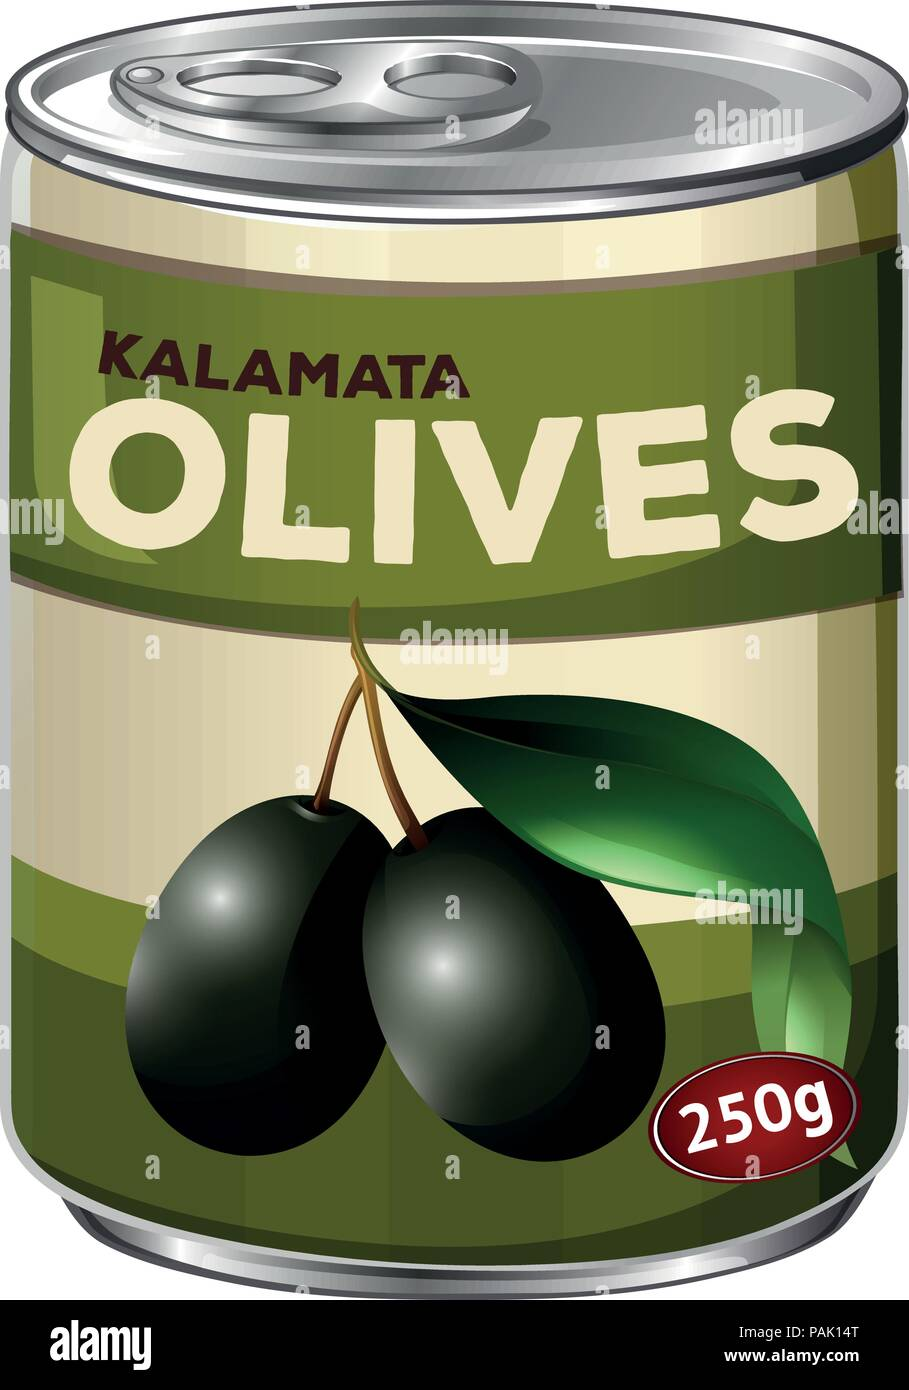 A tine of kalamata black olives illustration - Stock Vector